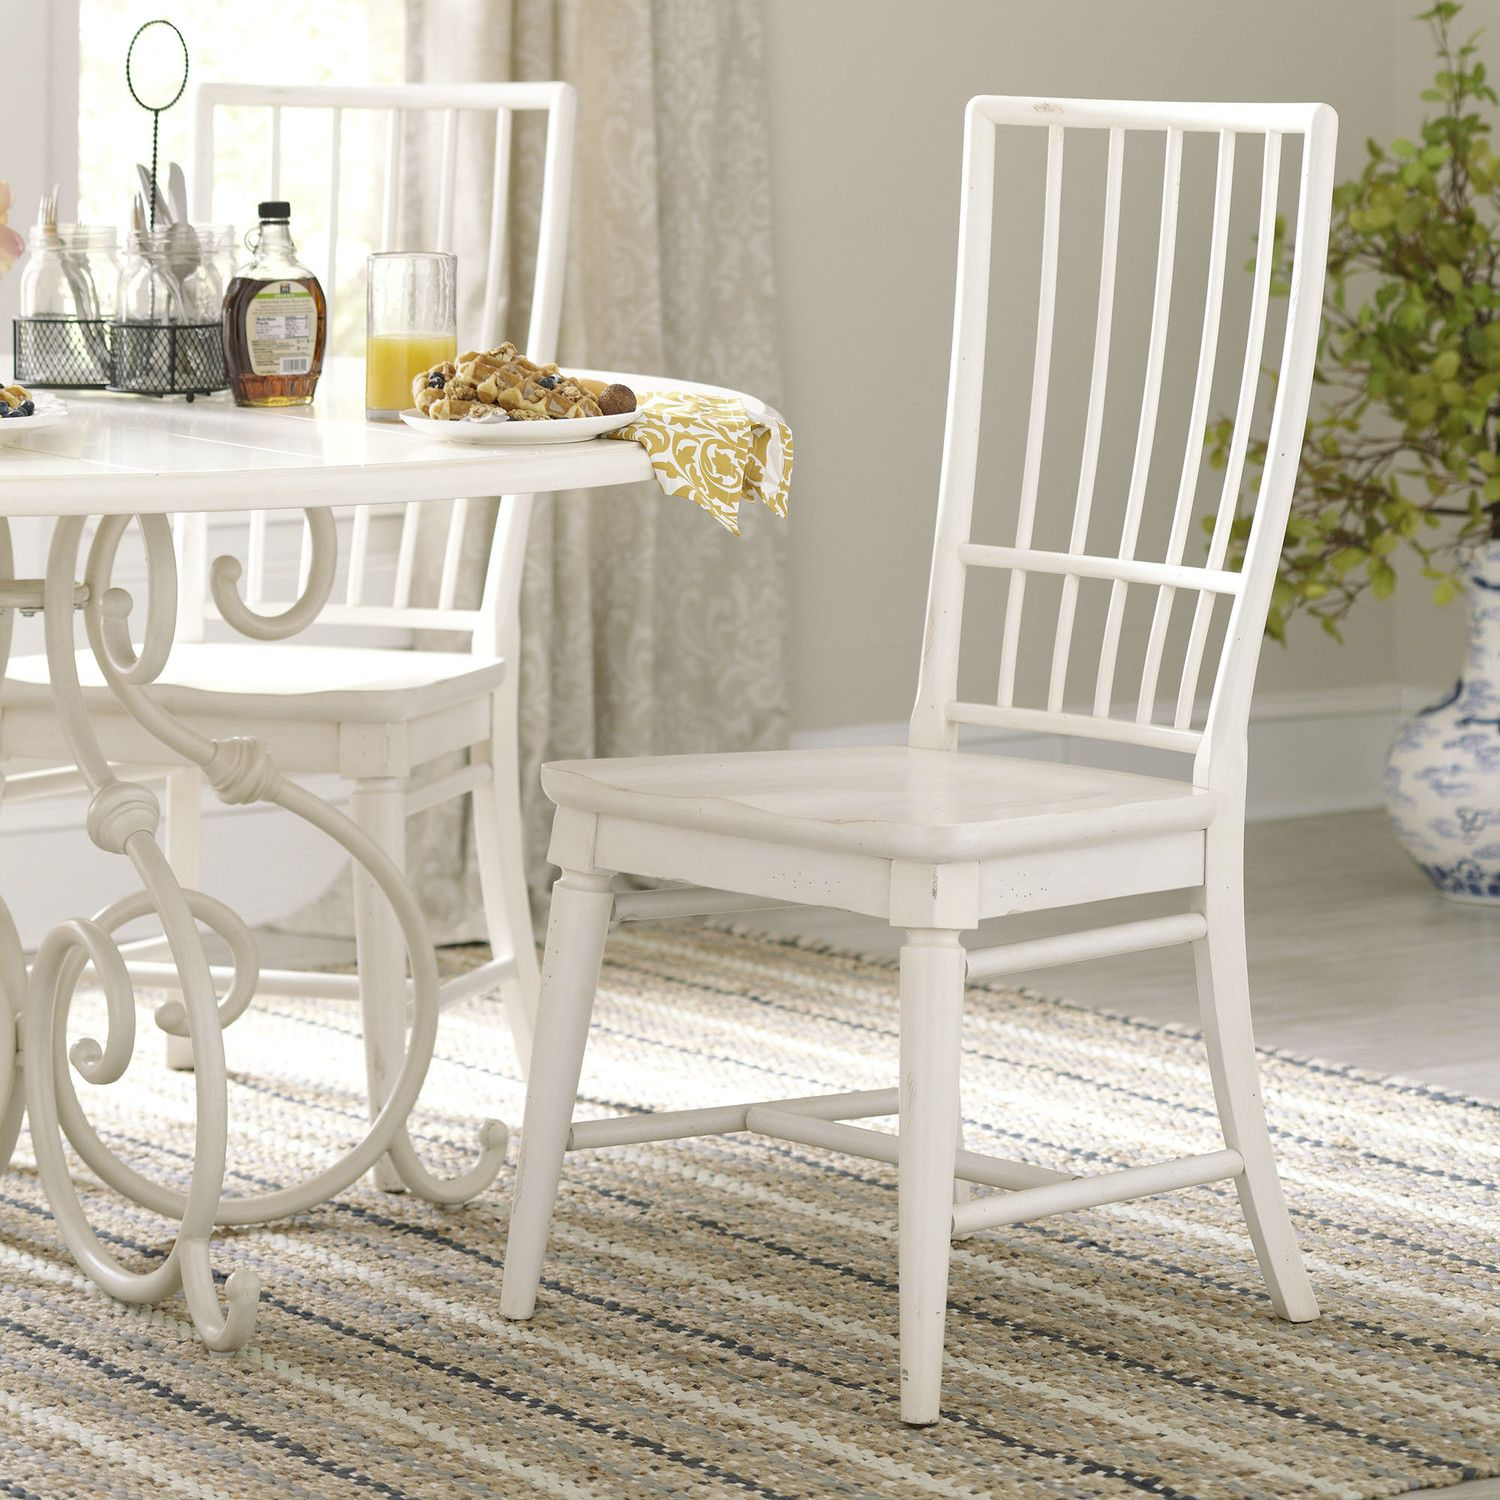 Birch lane lisbon rake back side chairs reviews wayfair